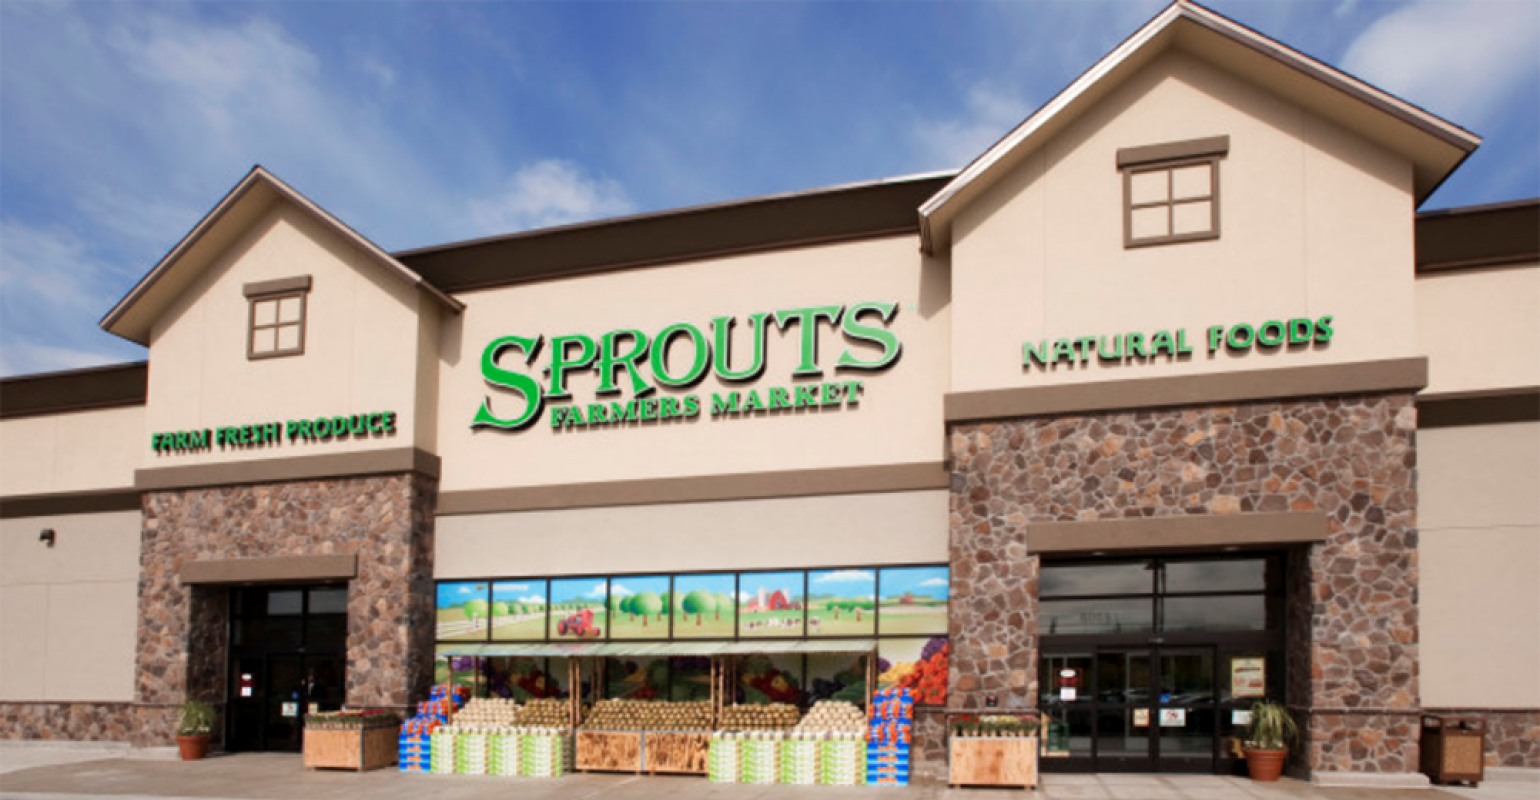 Sprouts plans 13 new stores for second half | Supermarket News